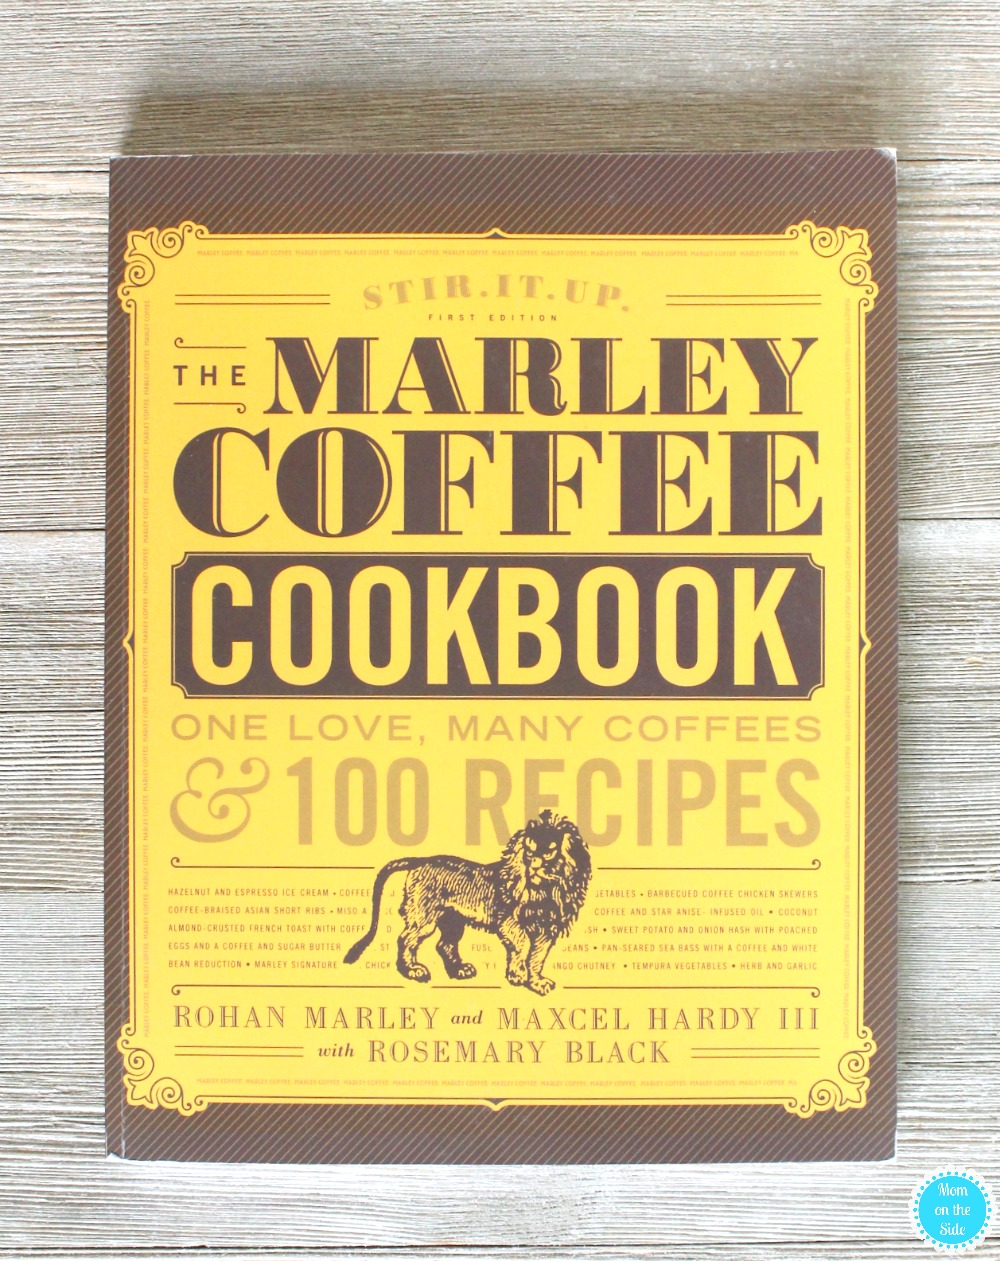 Books: The Marley Coffee Cookbook